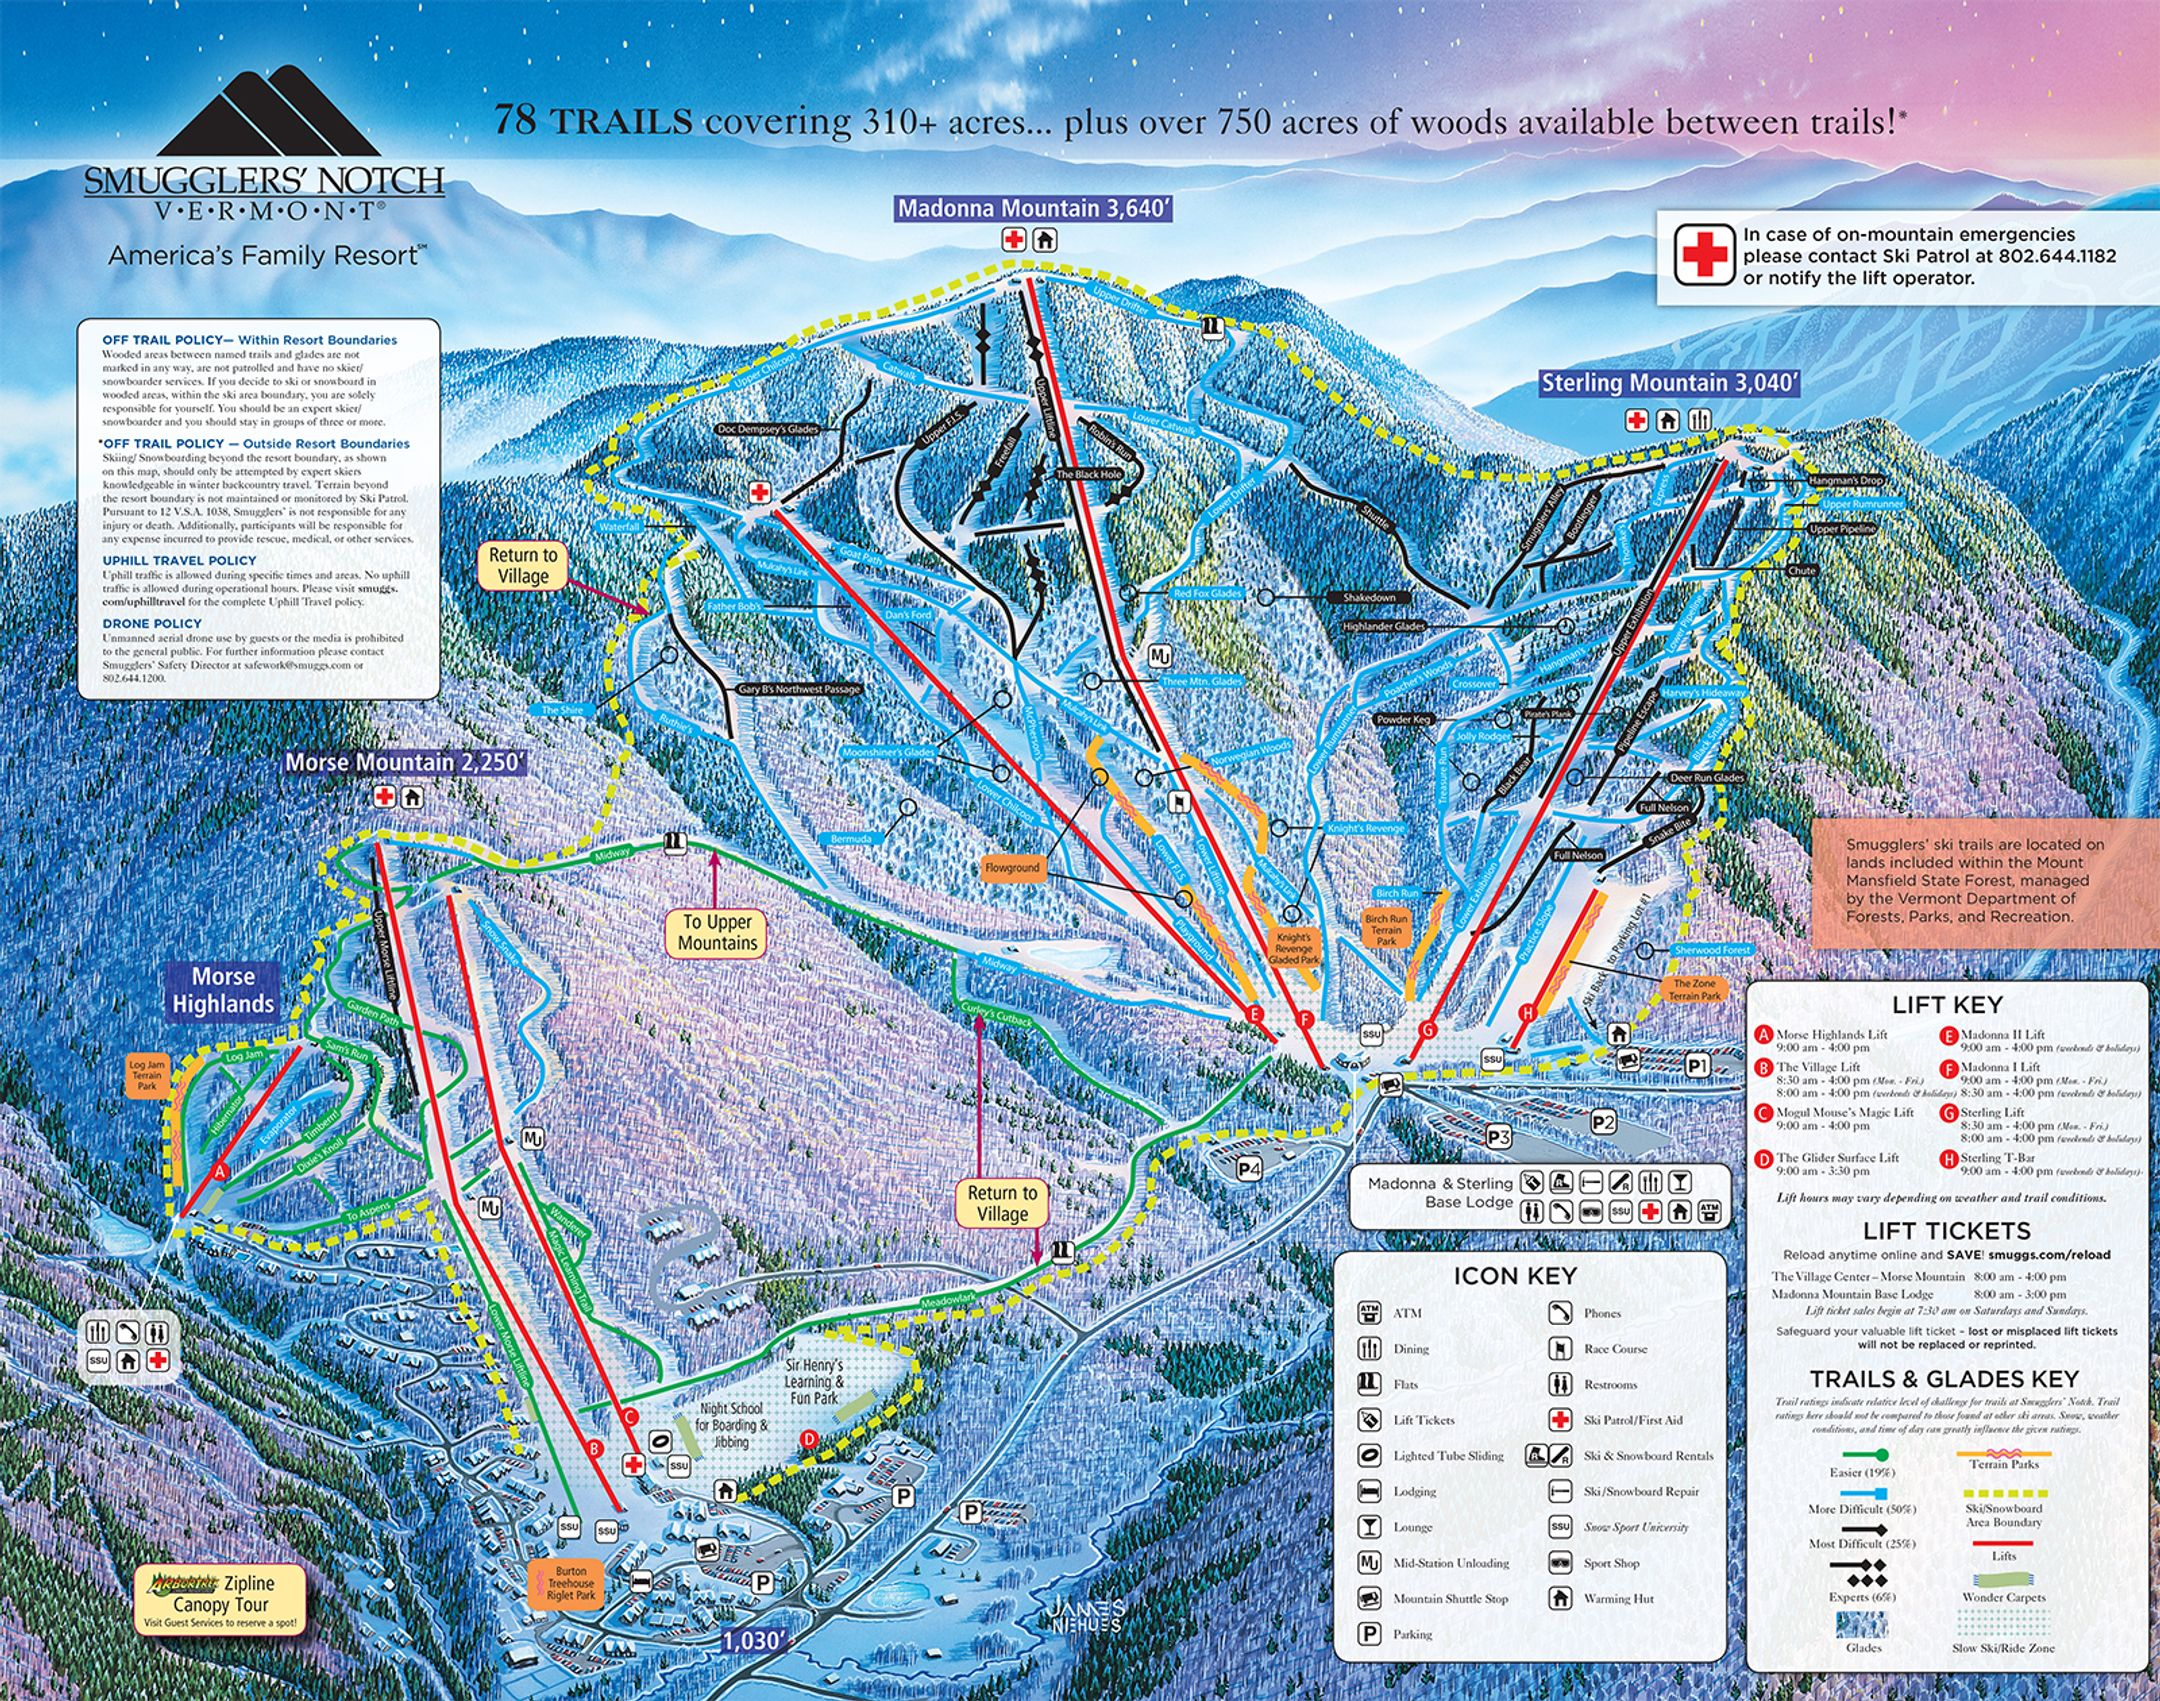 Smugglers Notch ski-resort-trail-map United States ripatrip